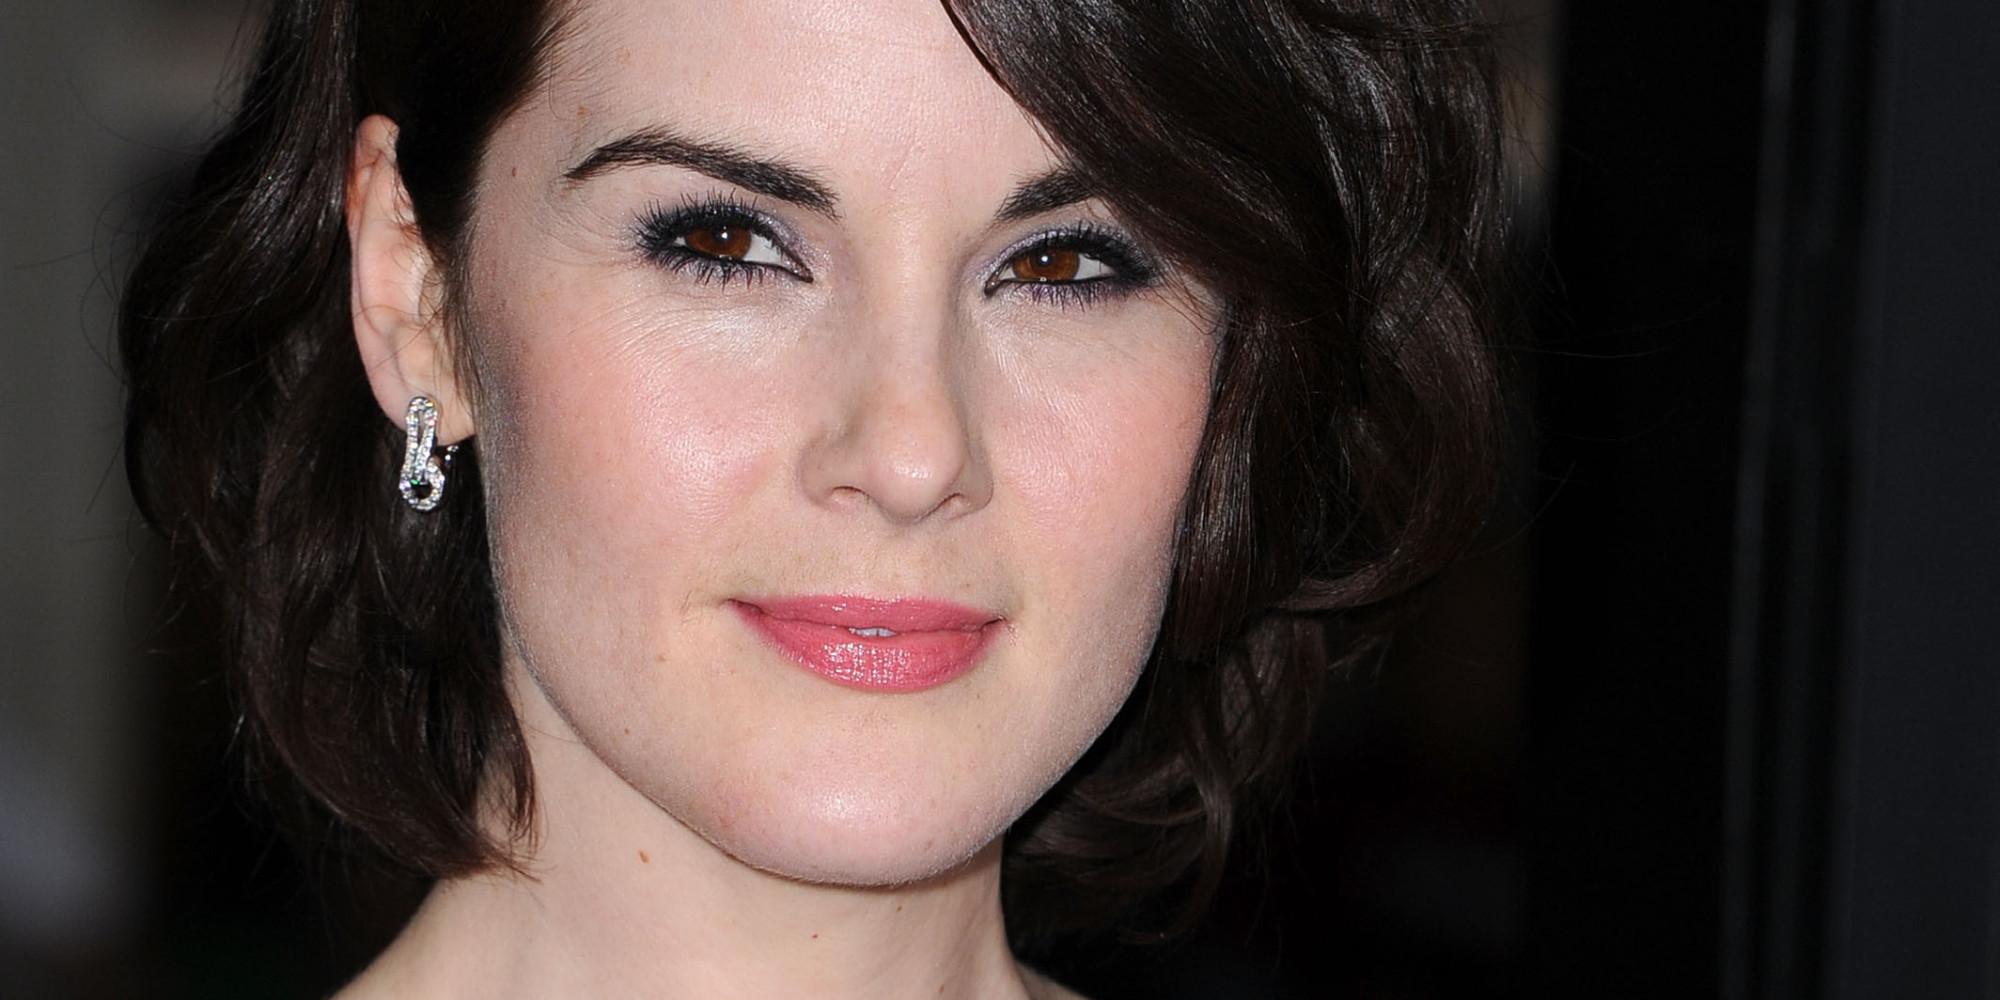 Downton Abbey' Star Michelle Dockery Fancies Herself As An Action